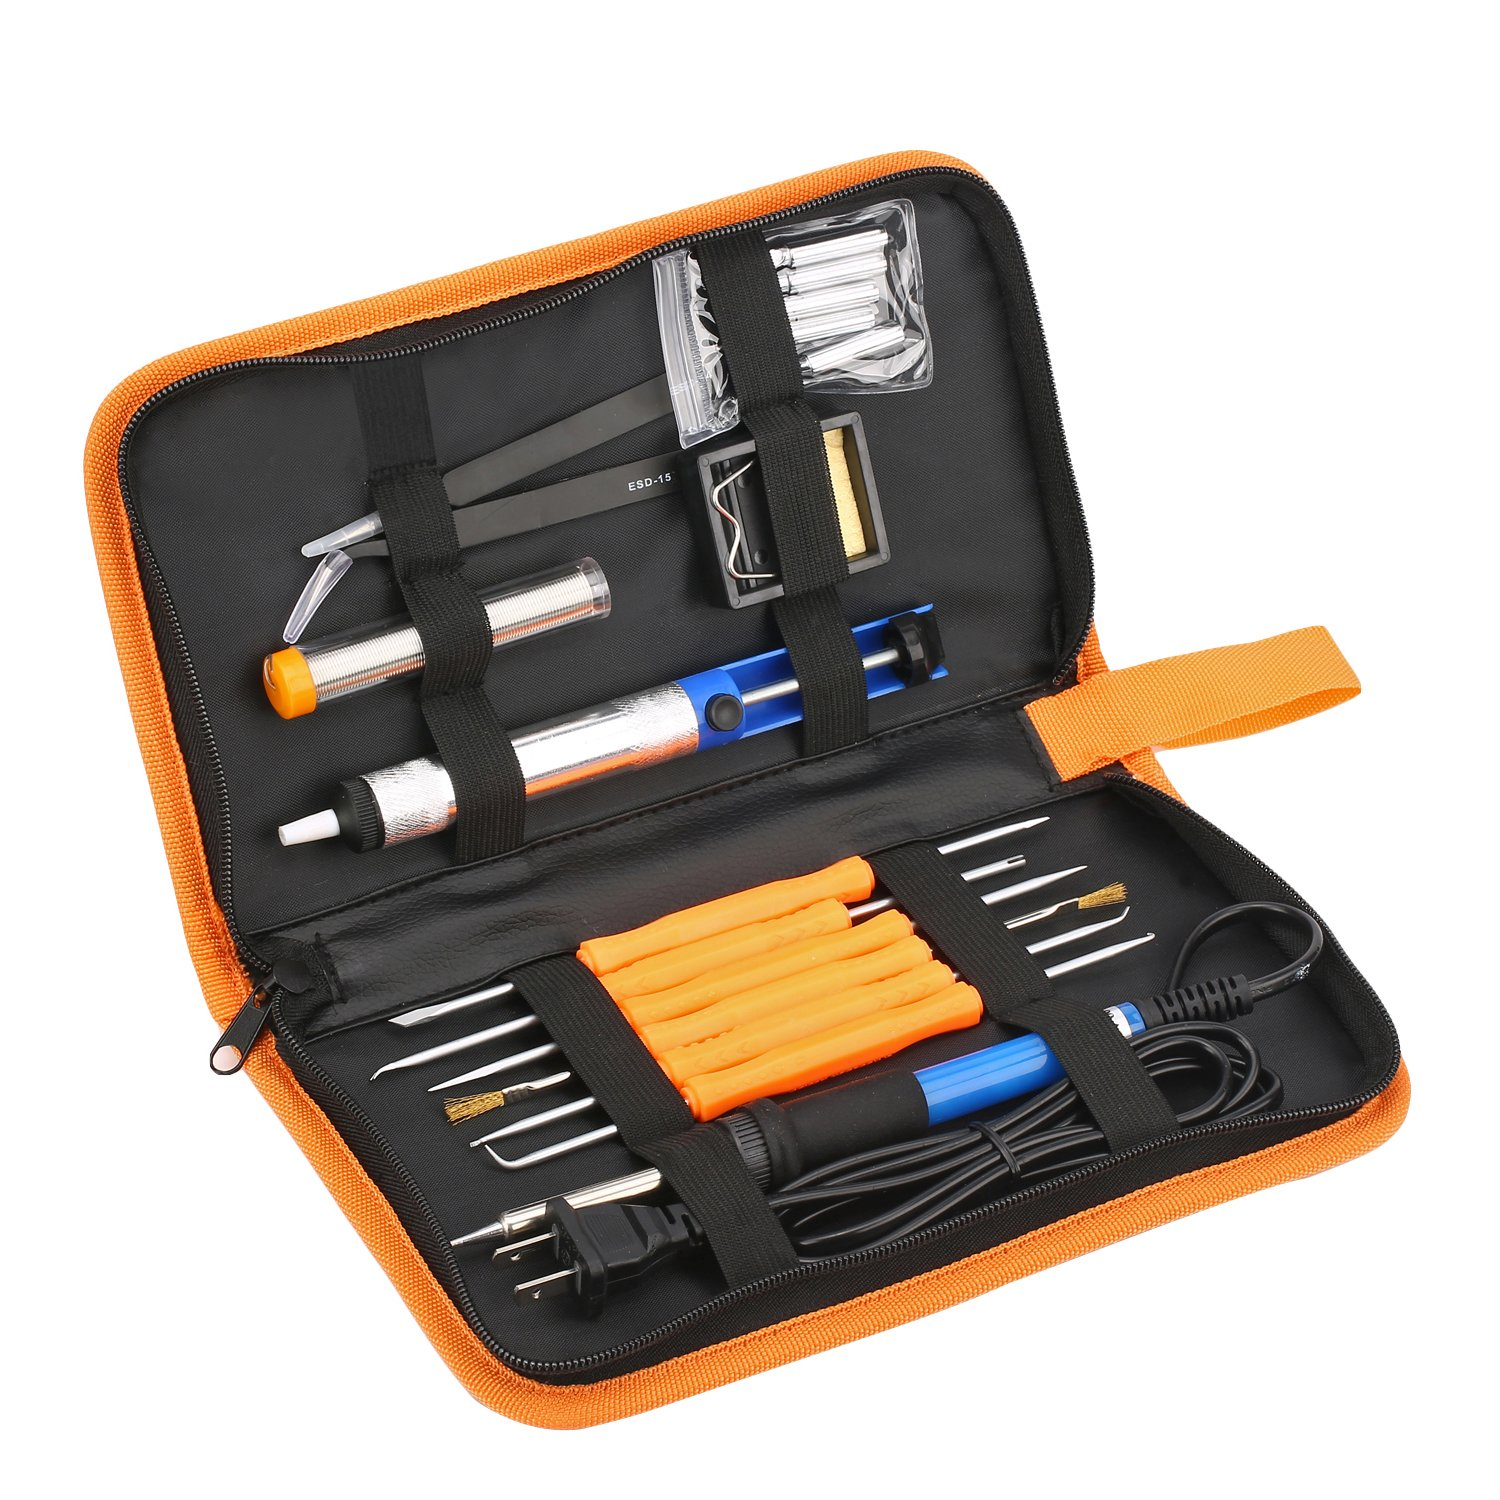 Fontic Soldering Iron Kit 7-in-1 with Carrying Case Including 60w 110V Temperature Adjustable Soldering Iron, Solder Wire,Screwdriver, Solder Sucker, Solder Stand and Soldering Tips